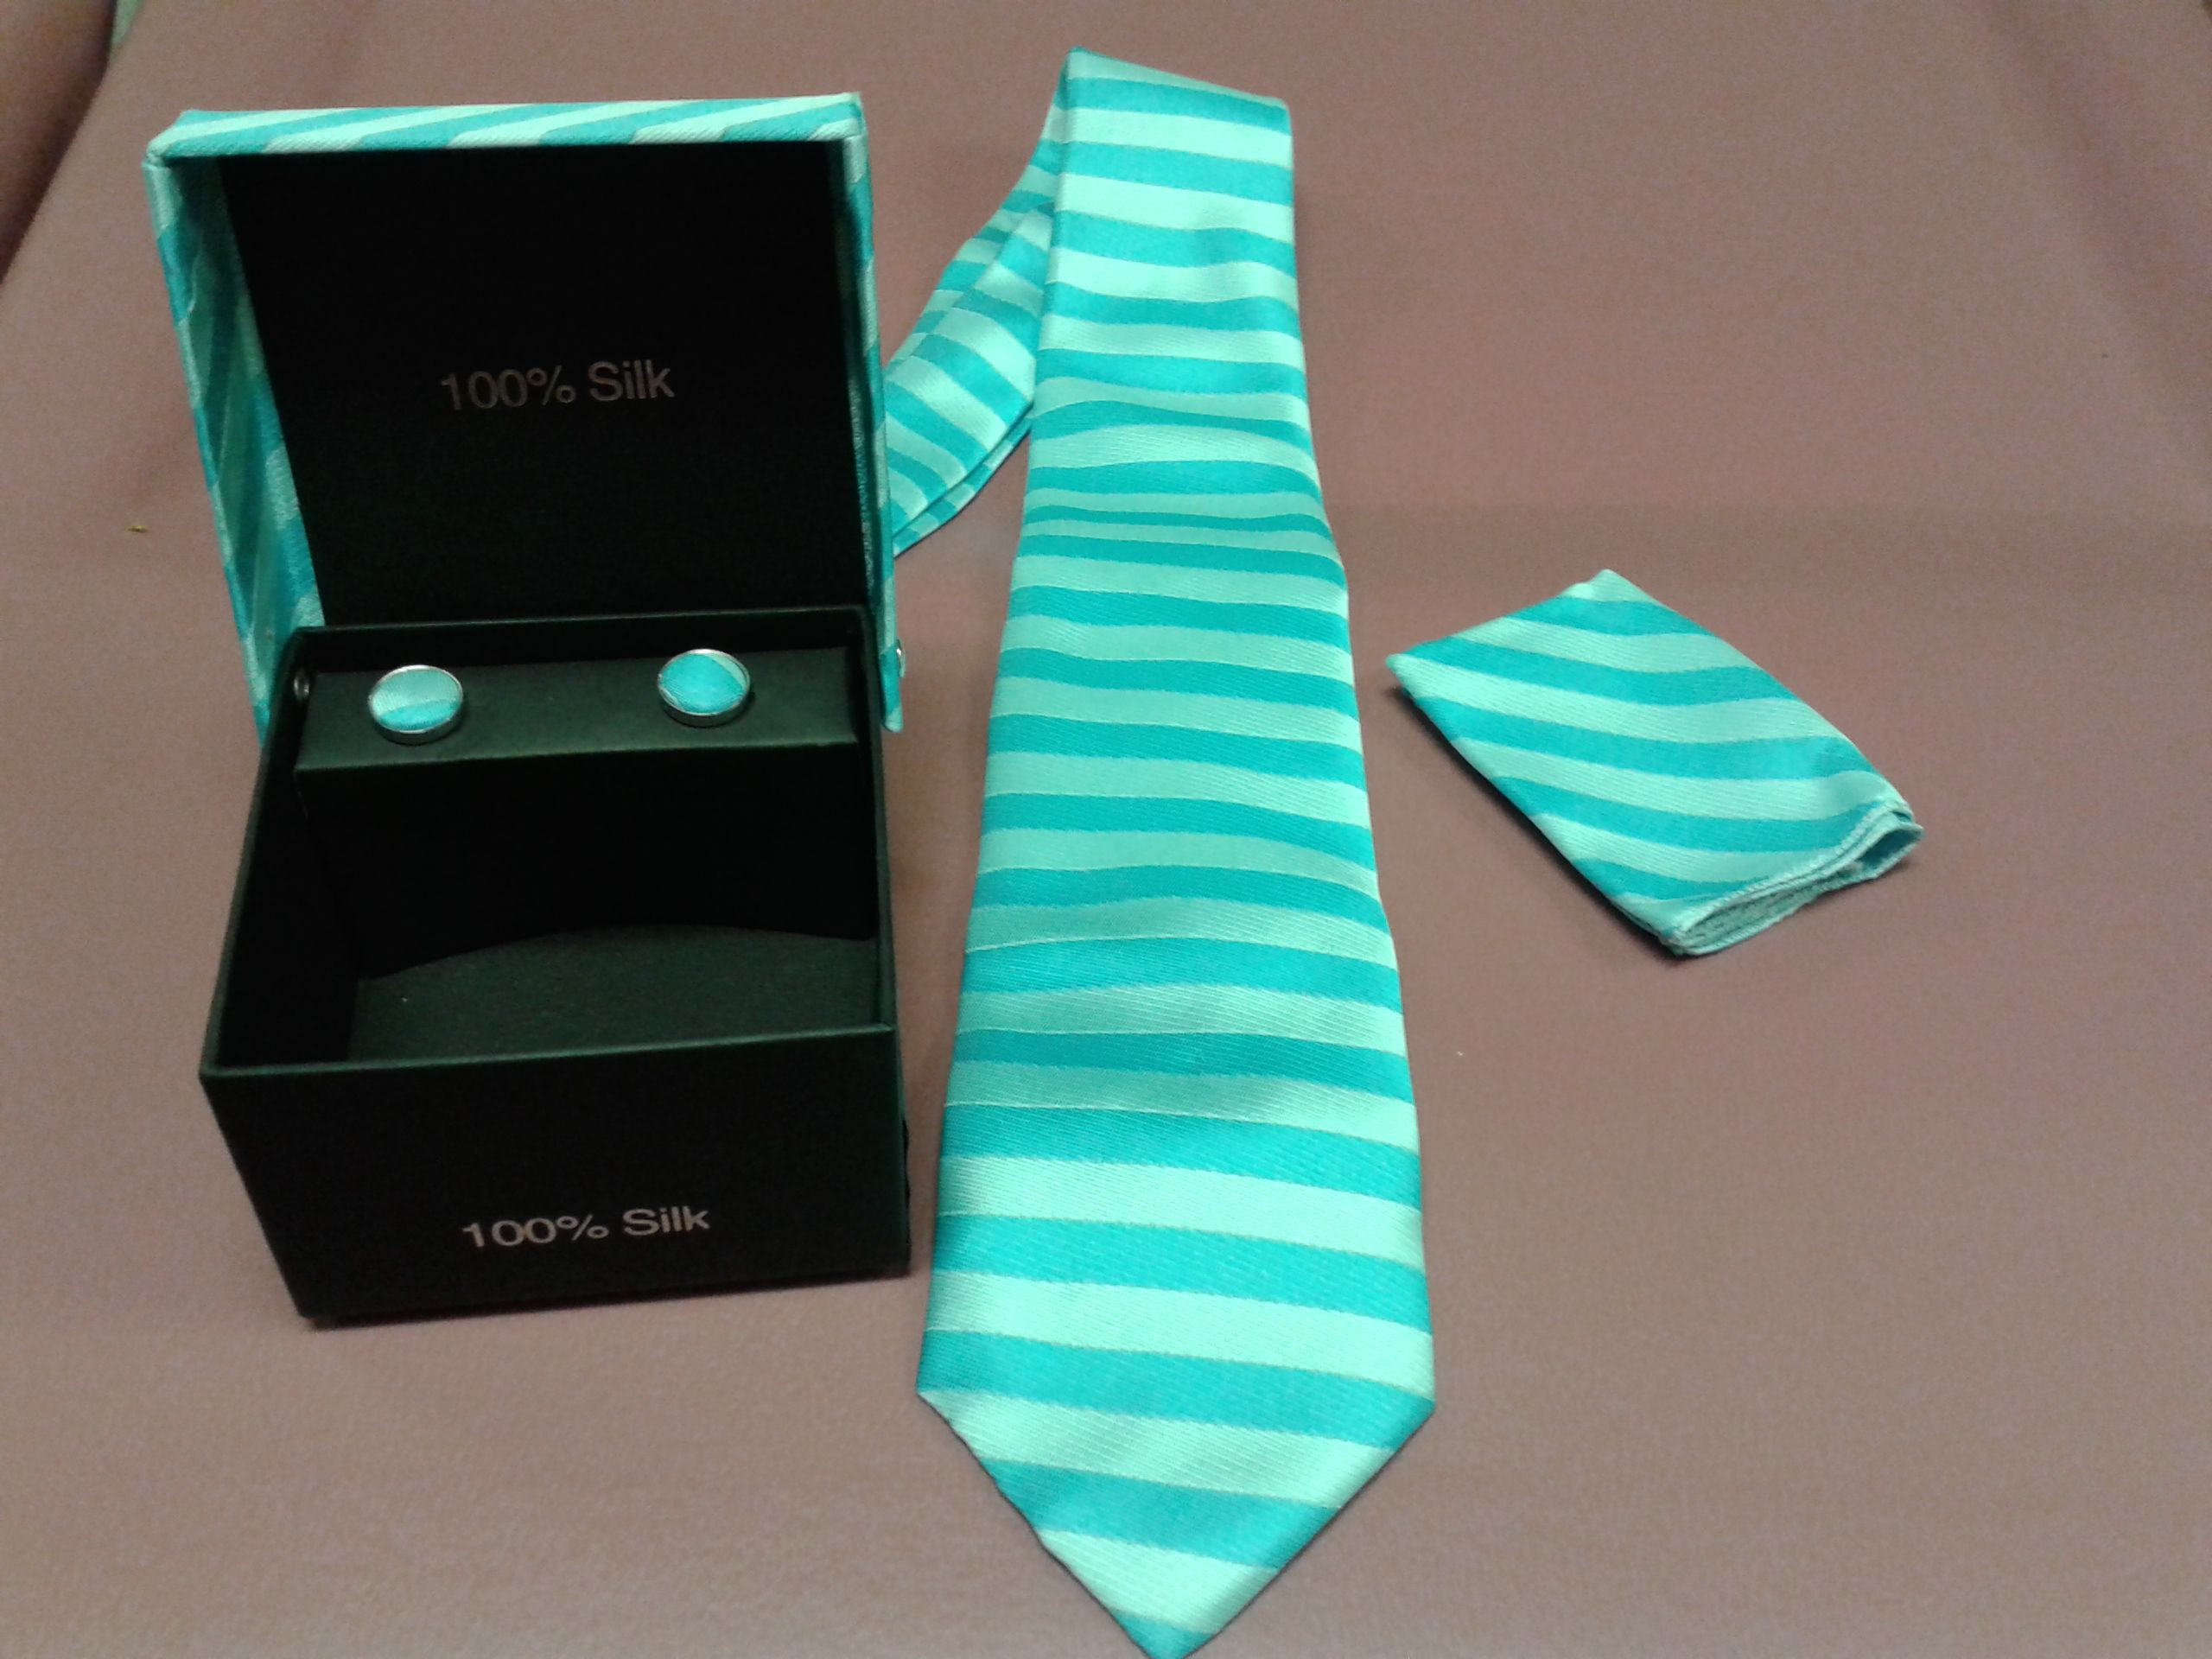 72 Classic Striped 100% Silk Assorted Men's Tie sets Necktie for $720, or 12 for $150 888-237-9993